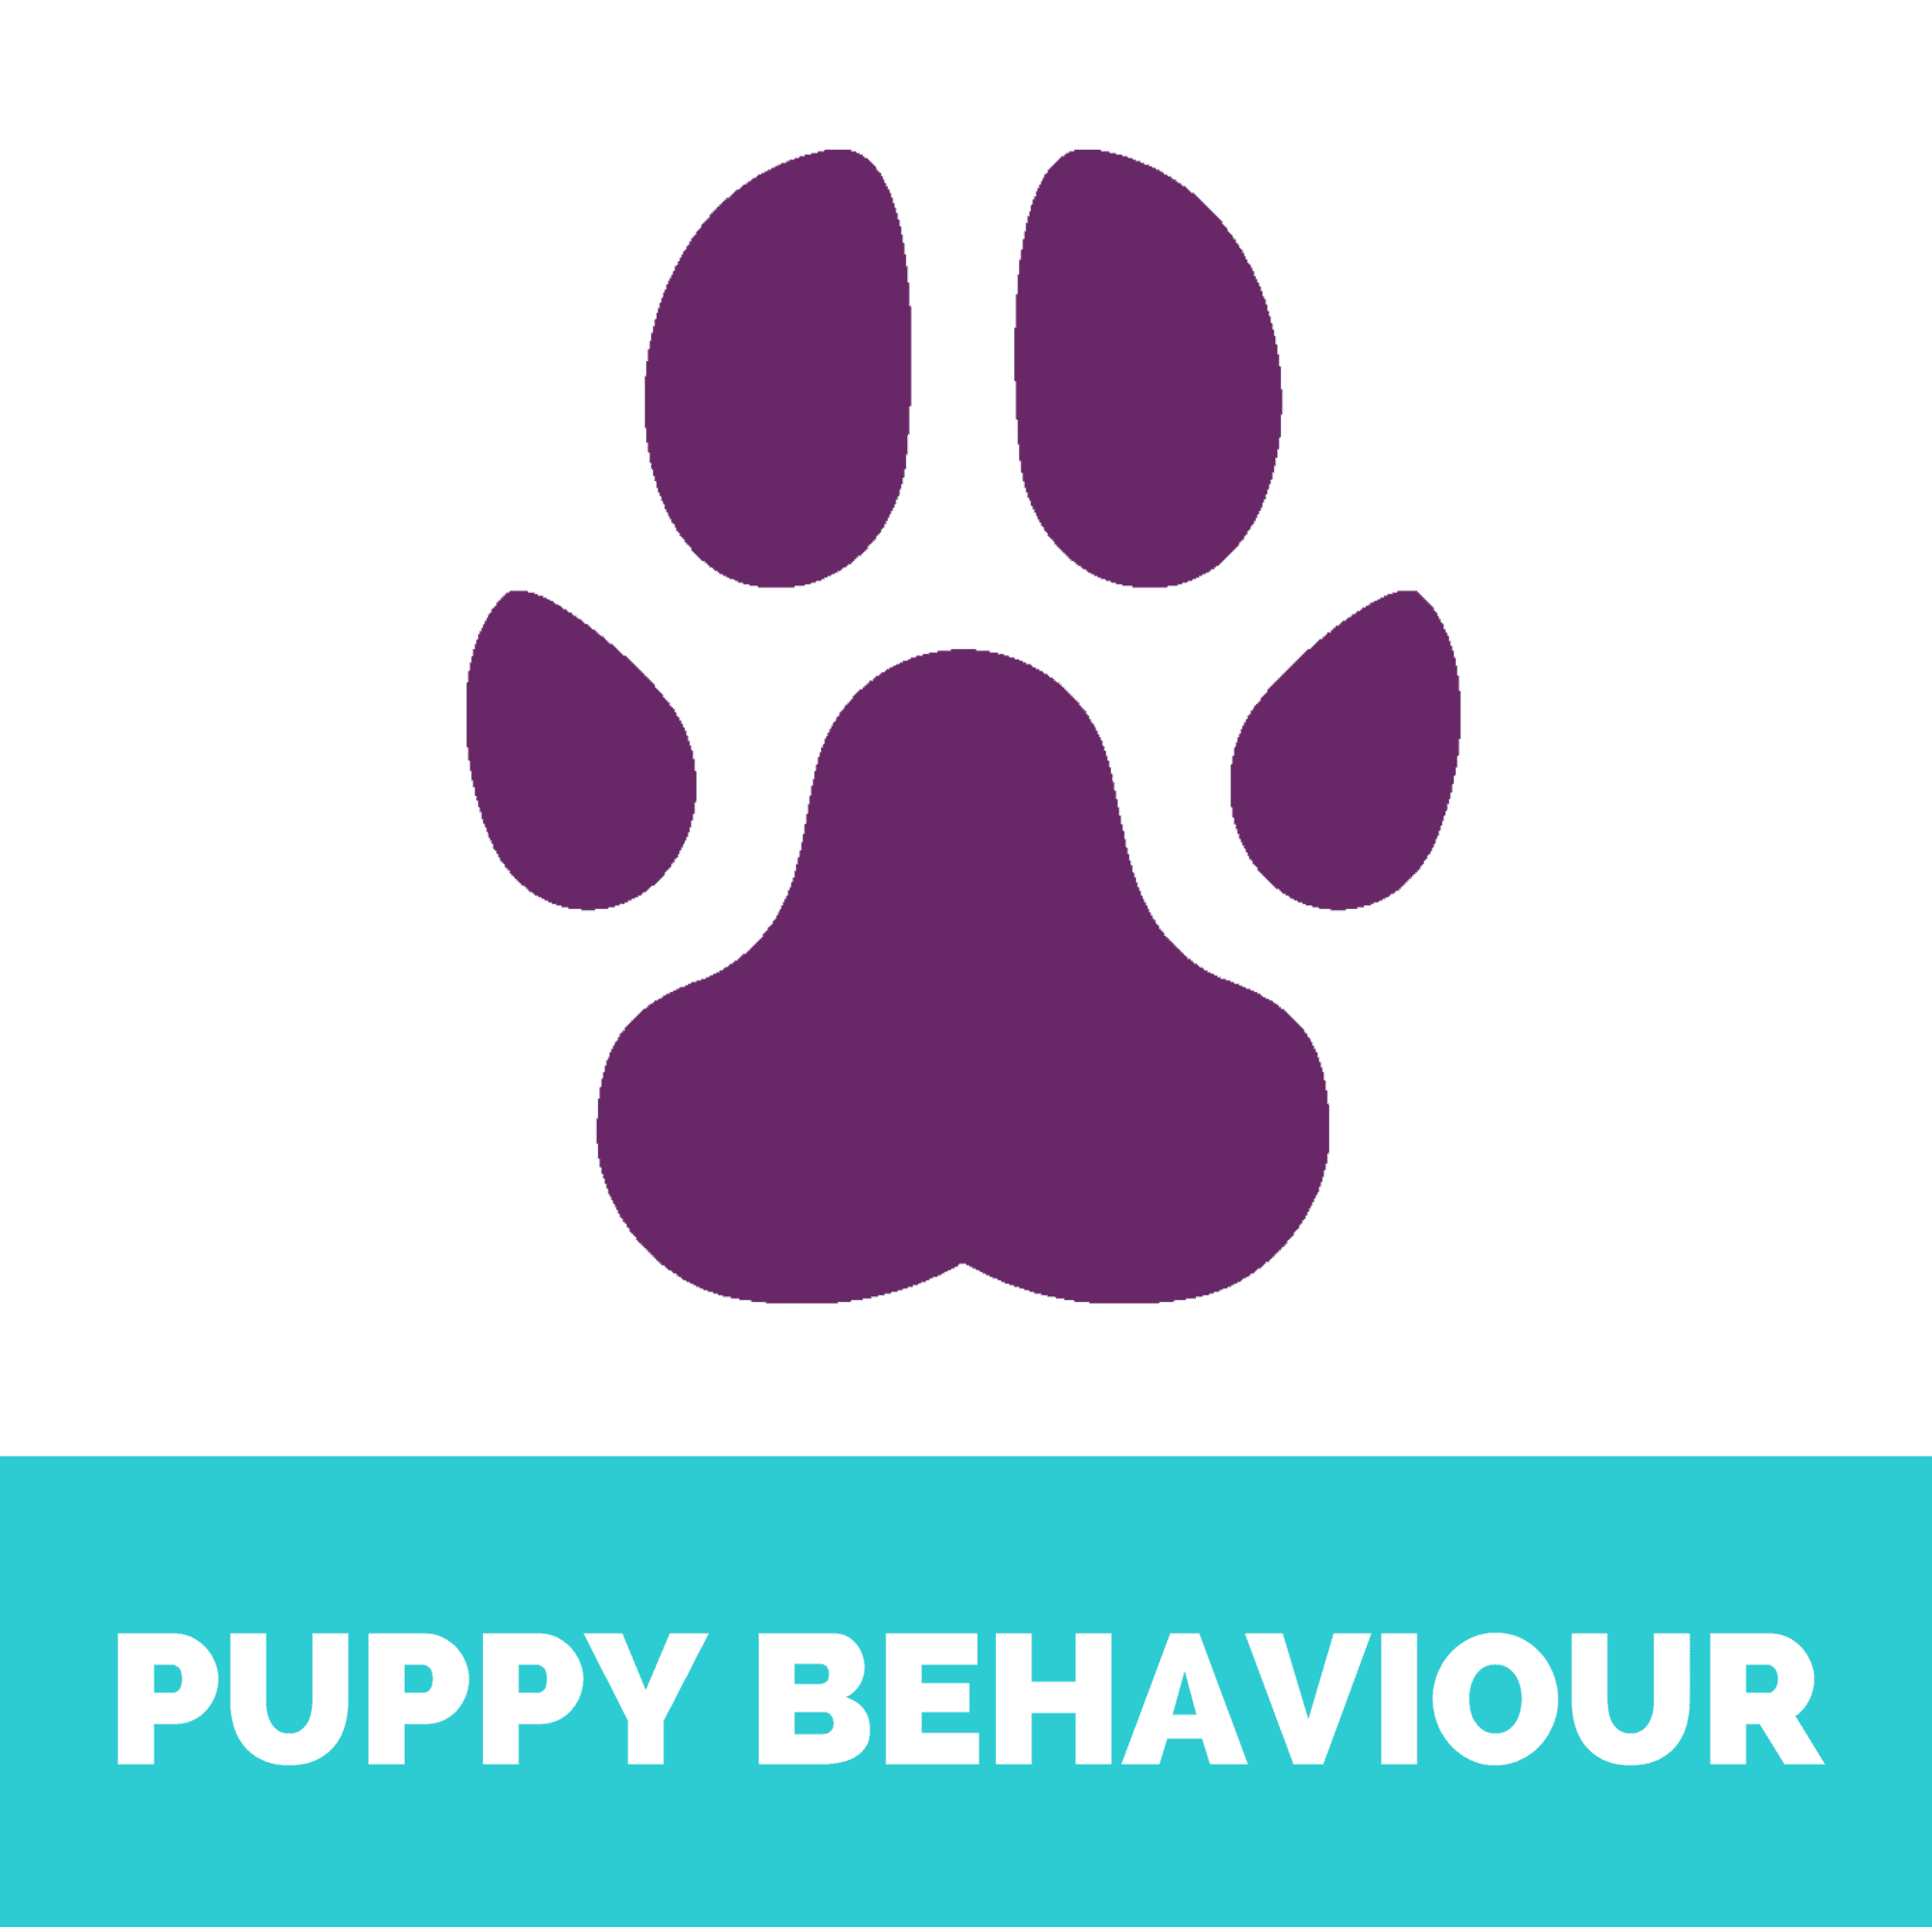 Puppy behaviour